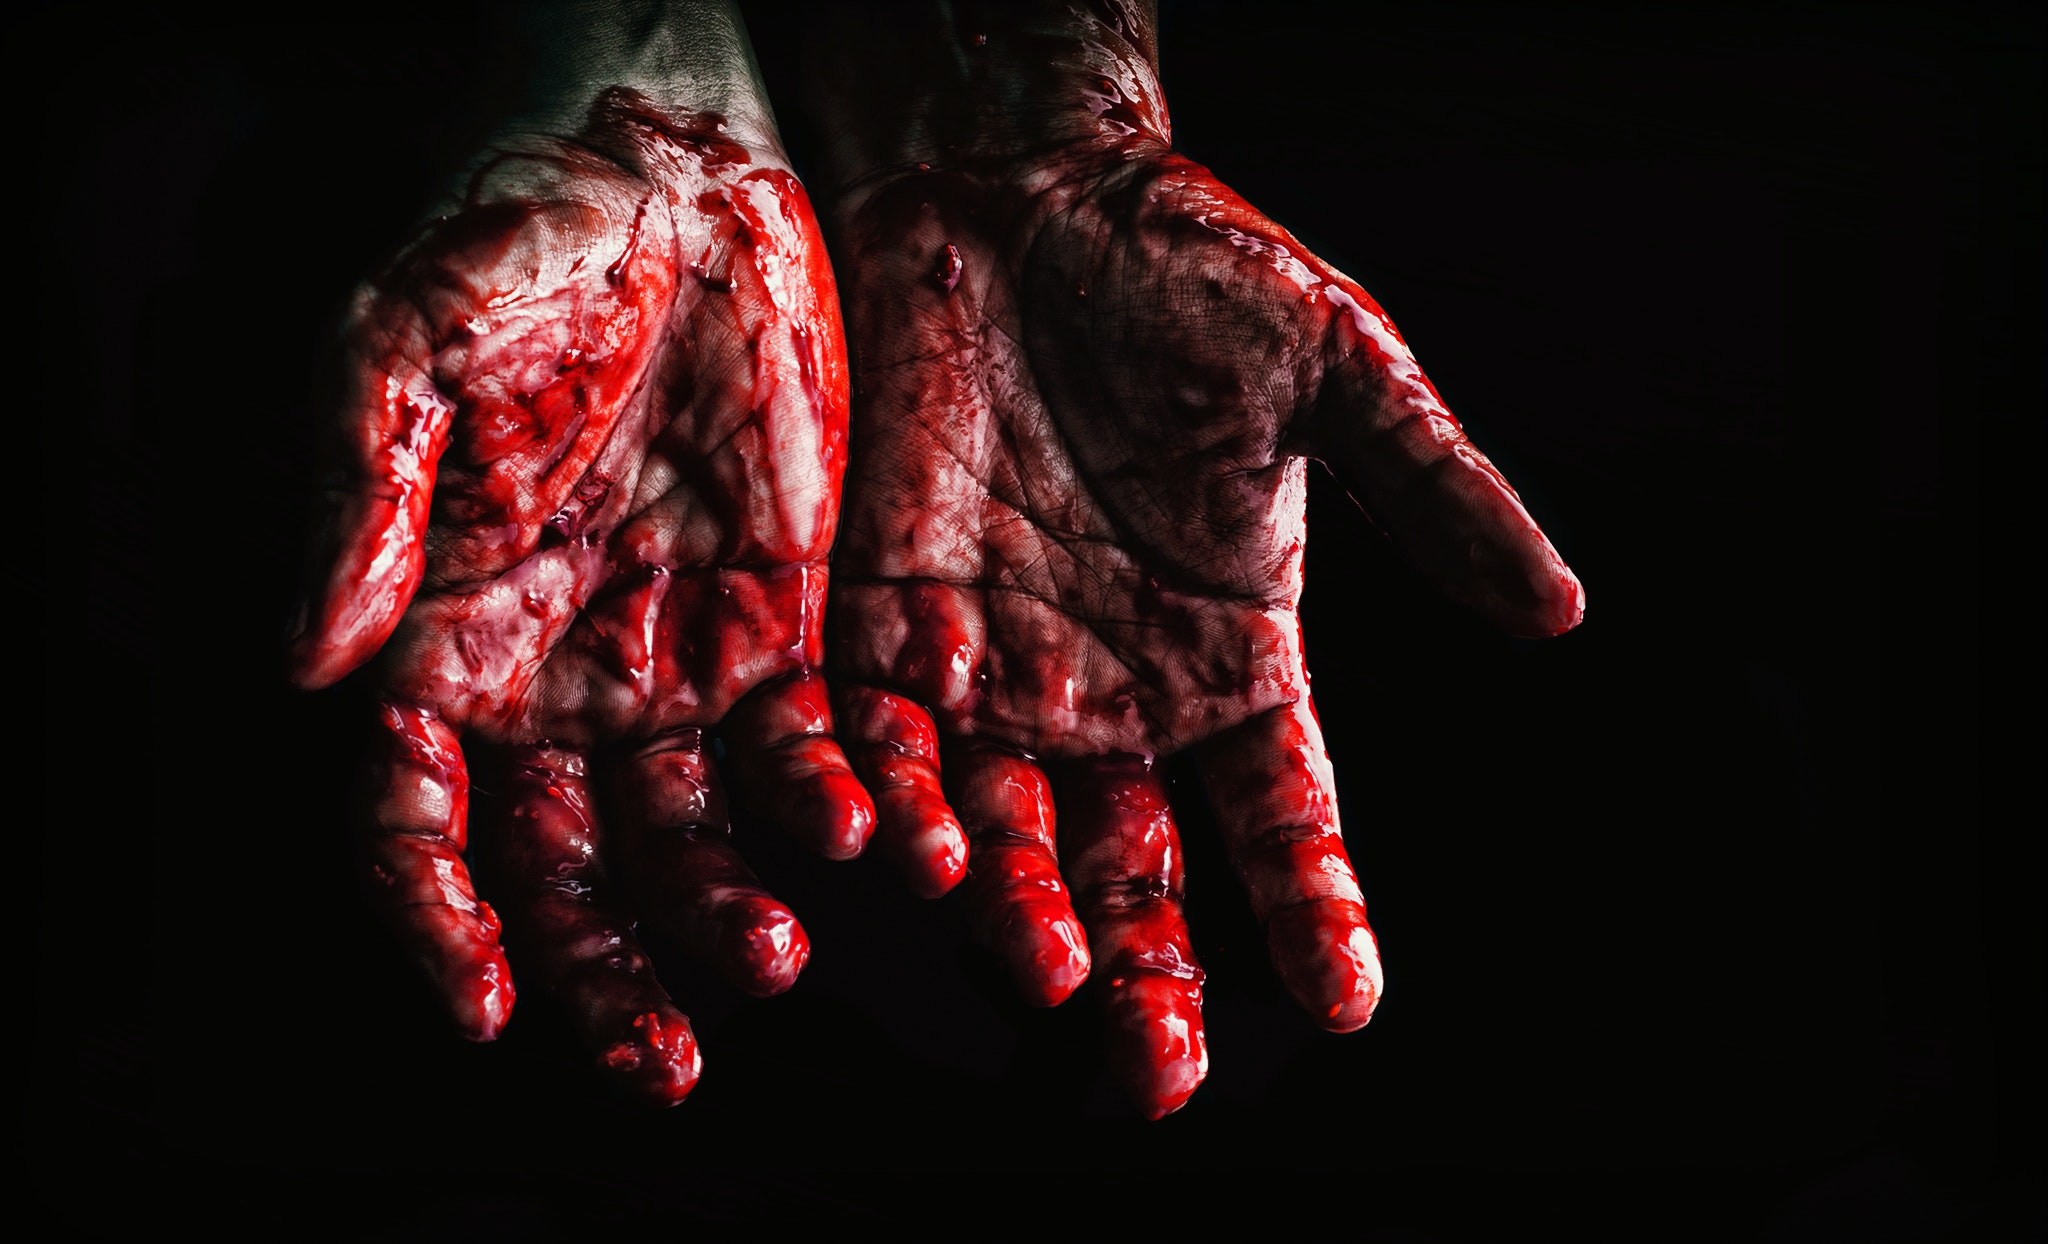 Hand Full of Blood · Free Stock Photo